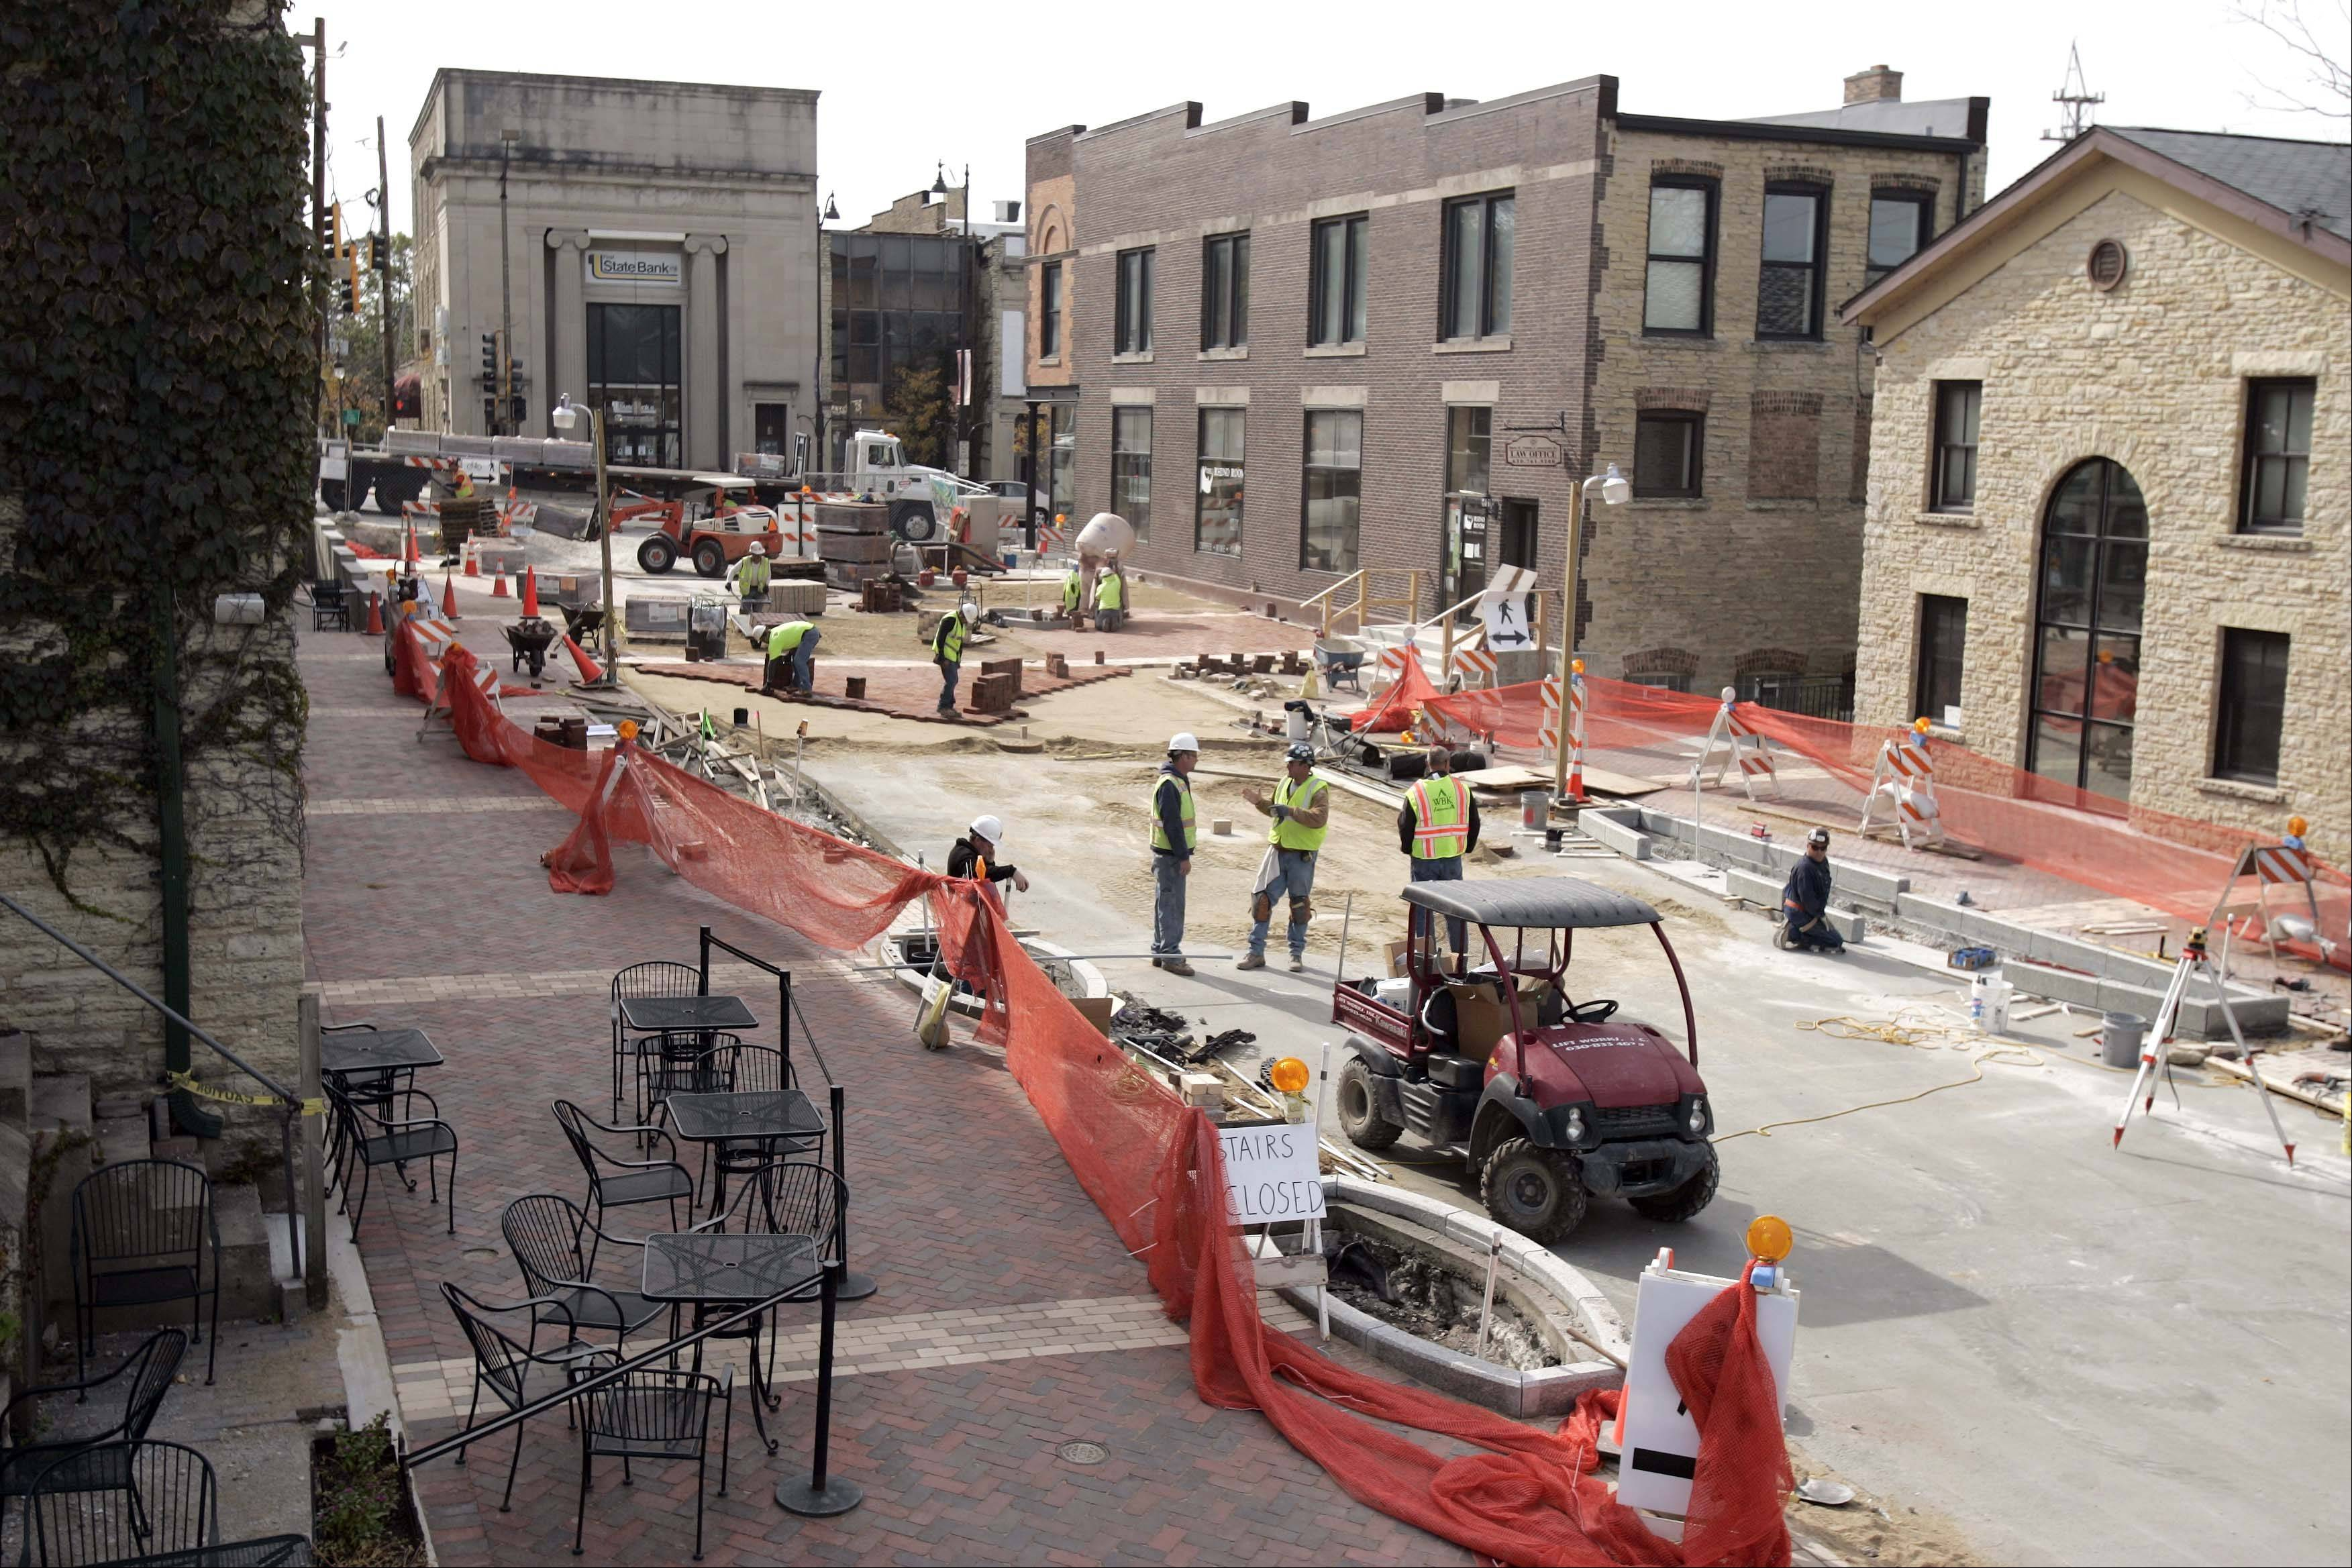 Construction of the streetscape on North River Street in downtown Batavia significantly disrupted business this summer. The city council is considering postponing streetscape and related improvements for Houston Street, which has already been postponed once, until at least 2014.